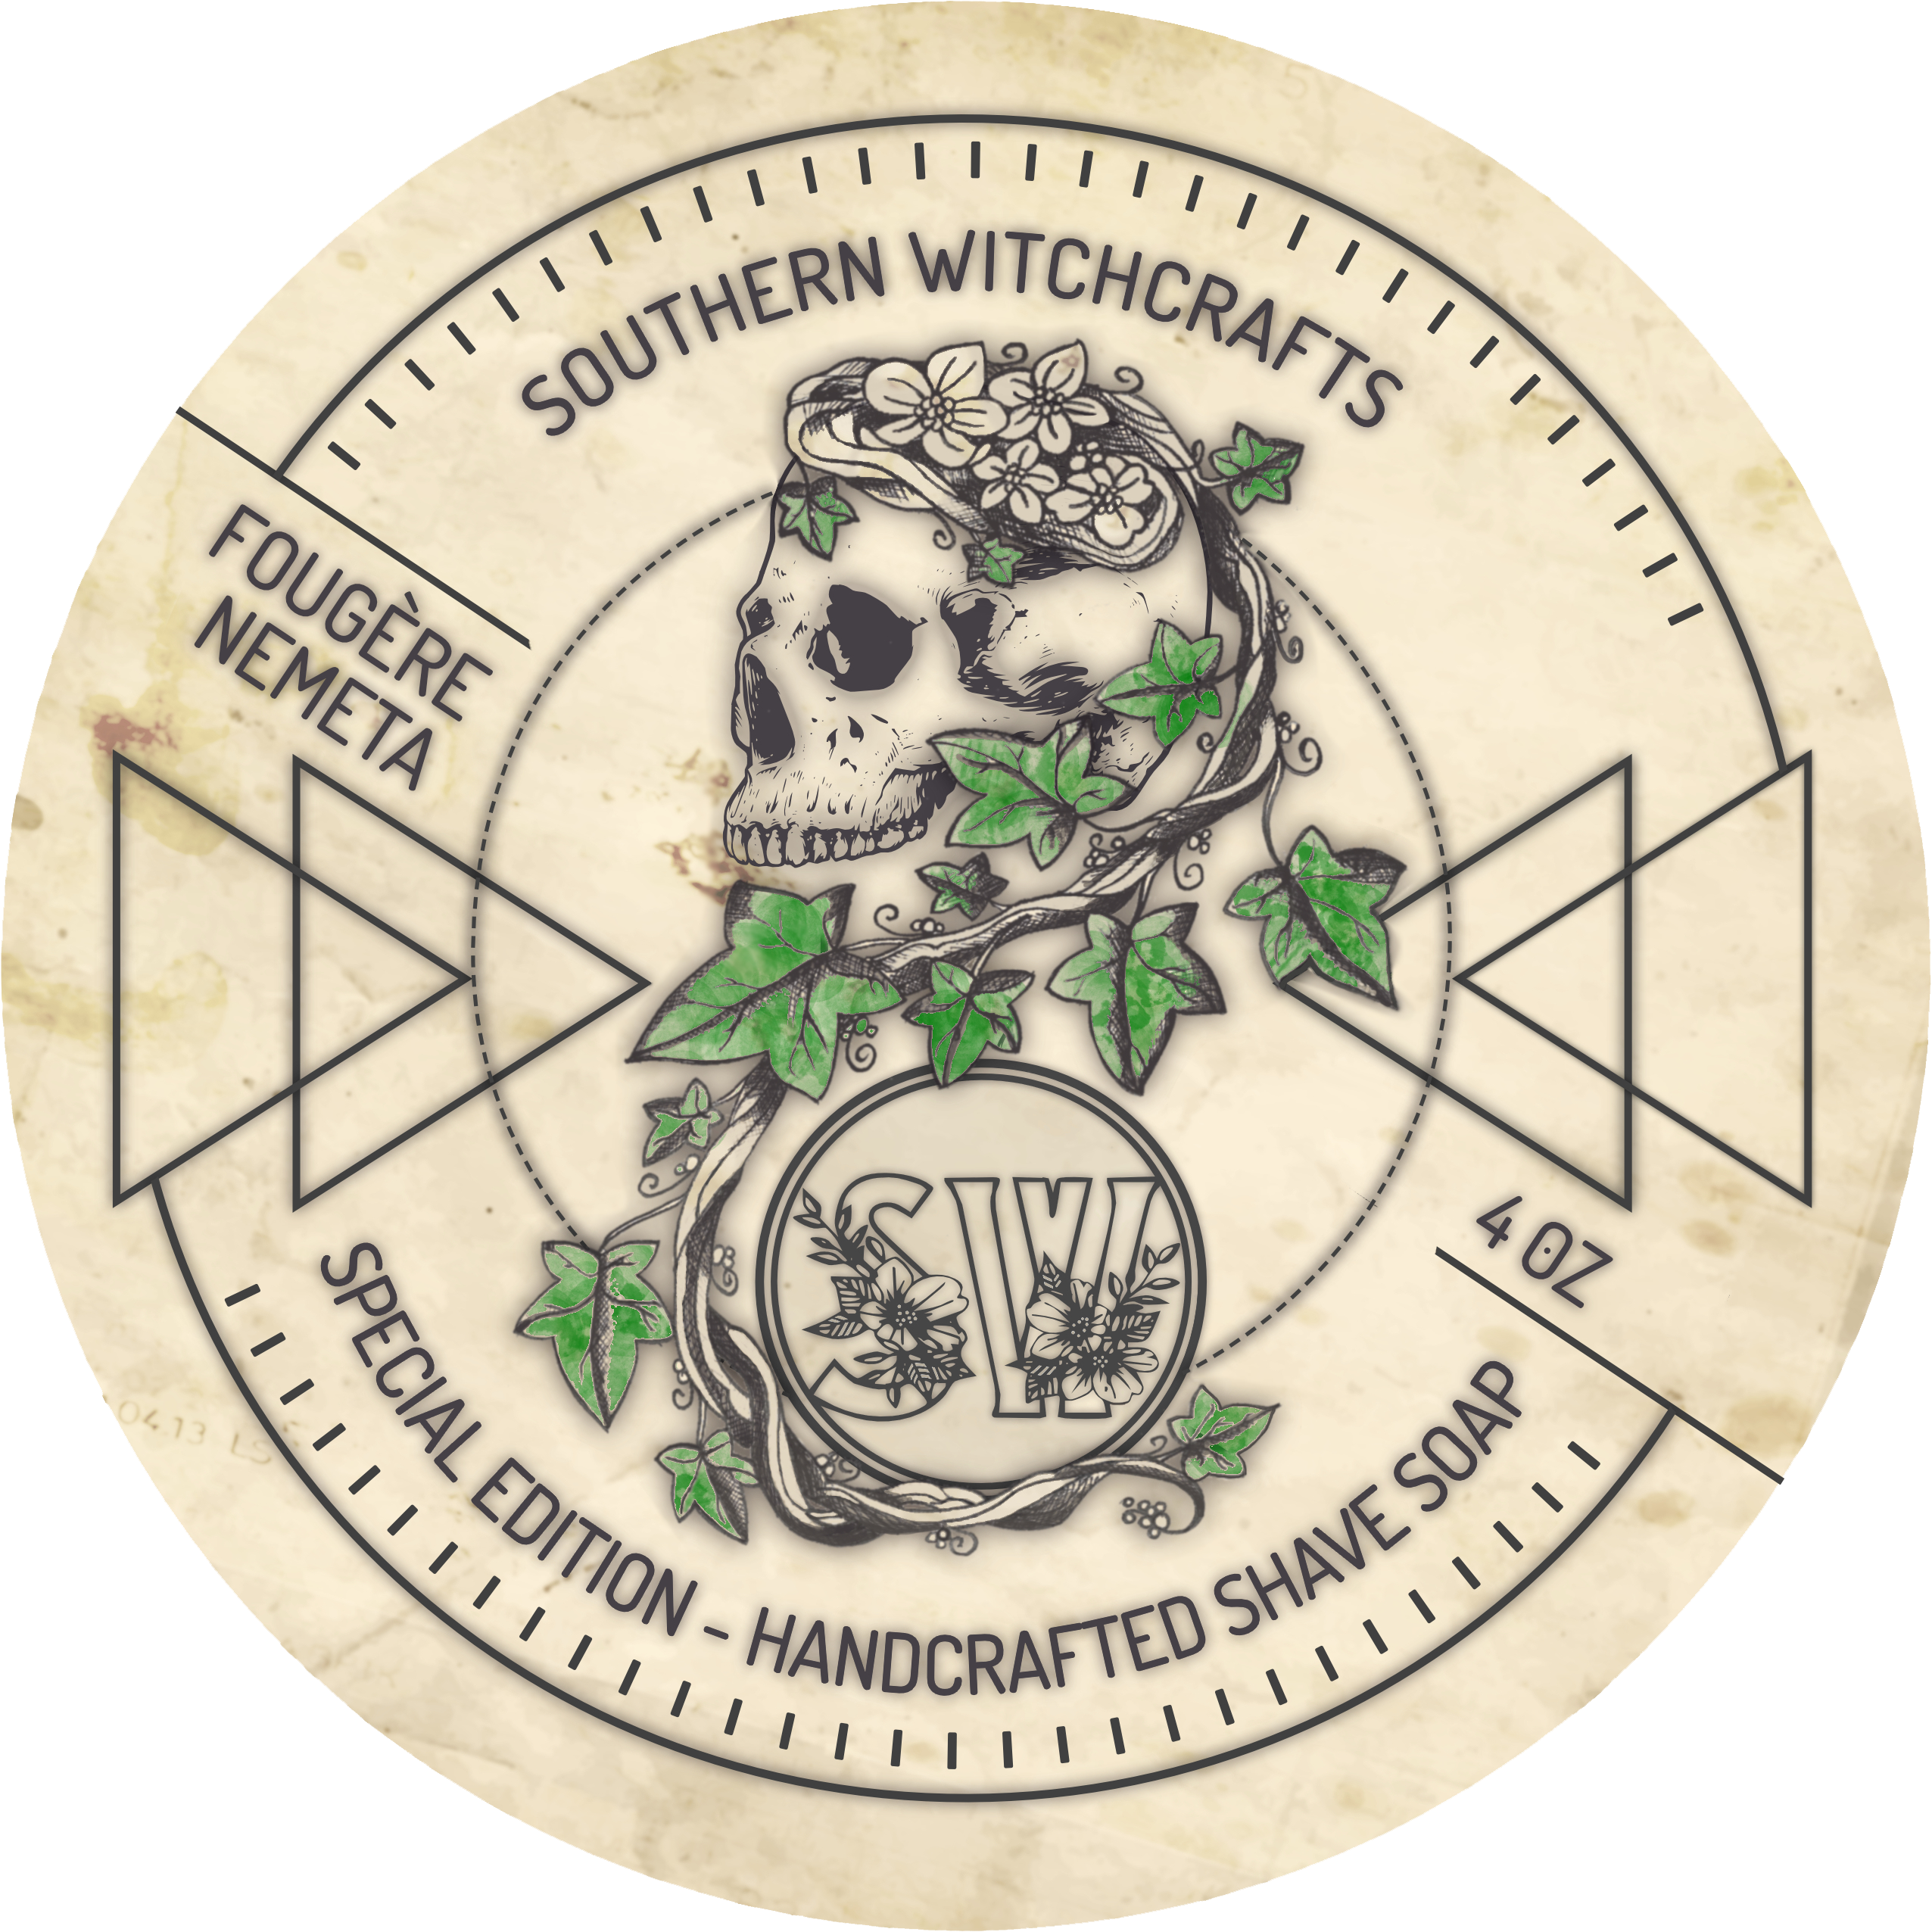 Southern Witchcrafts - Fougere Nemeta - Soap image